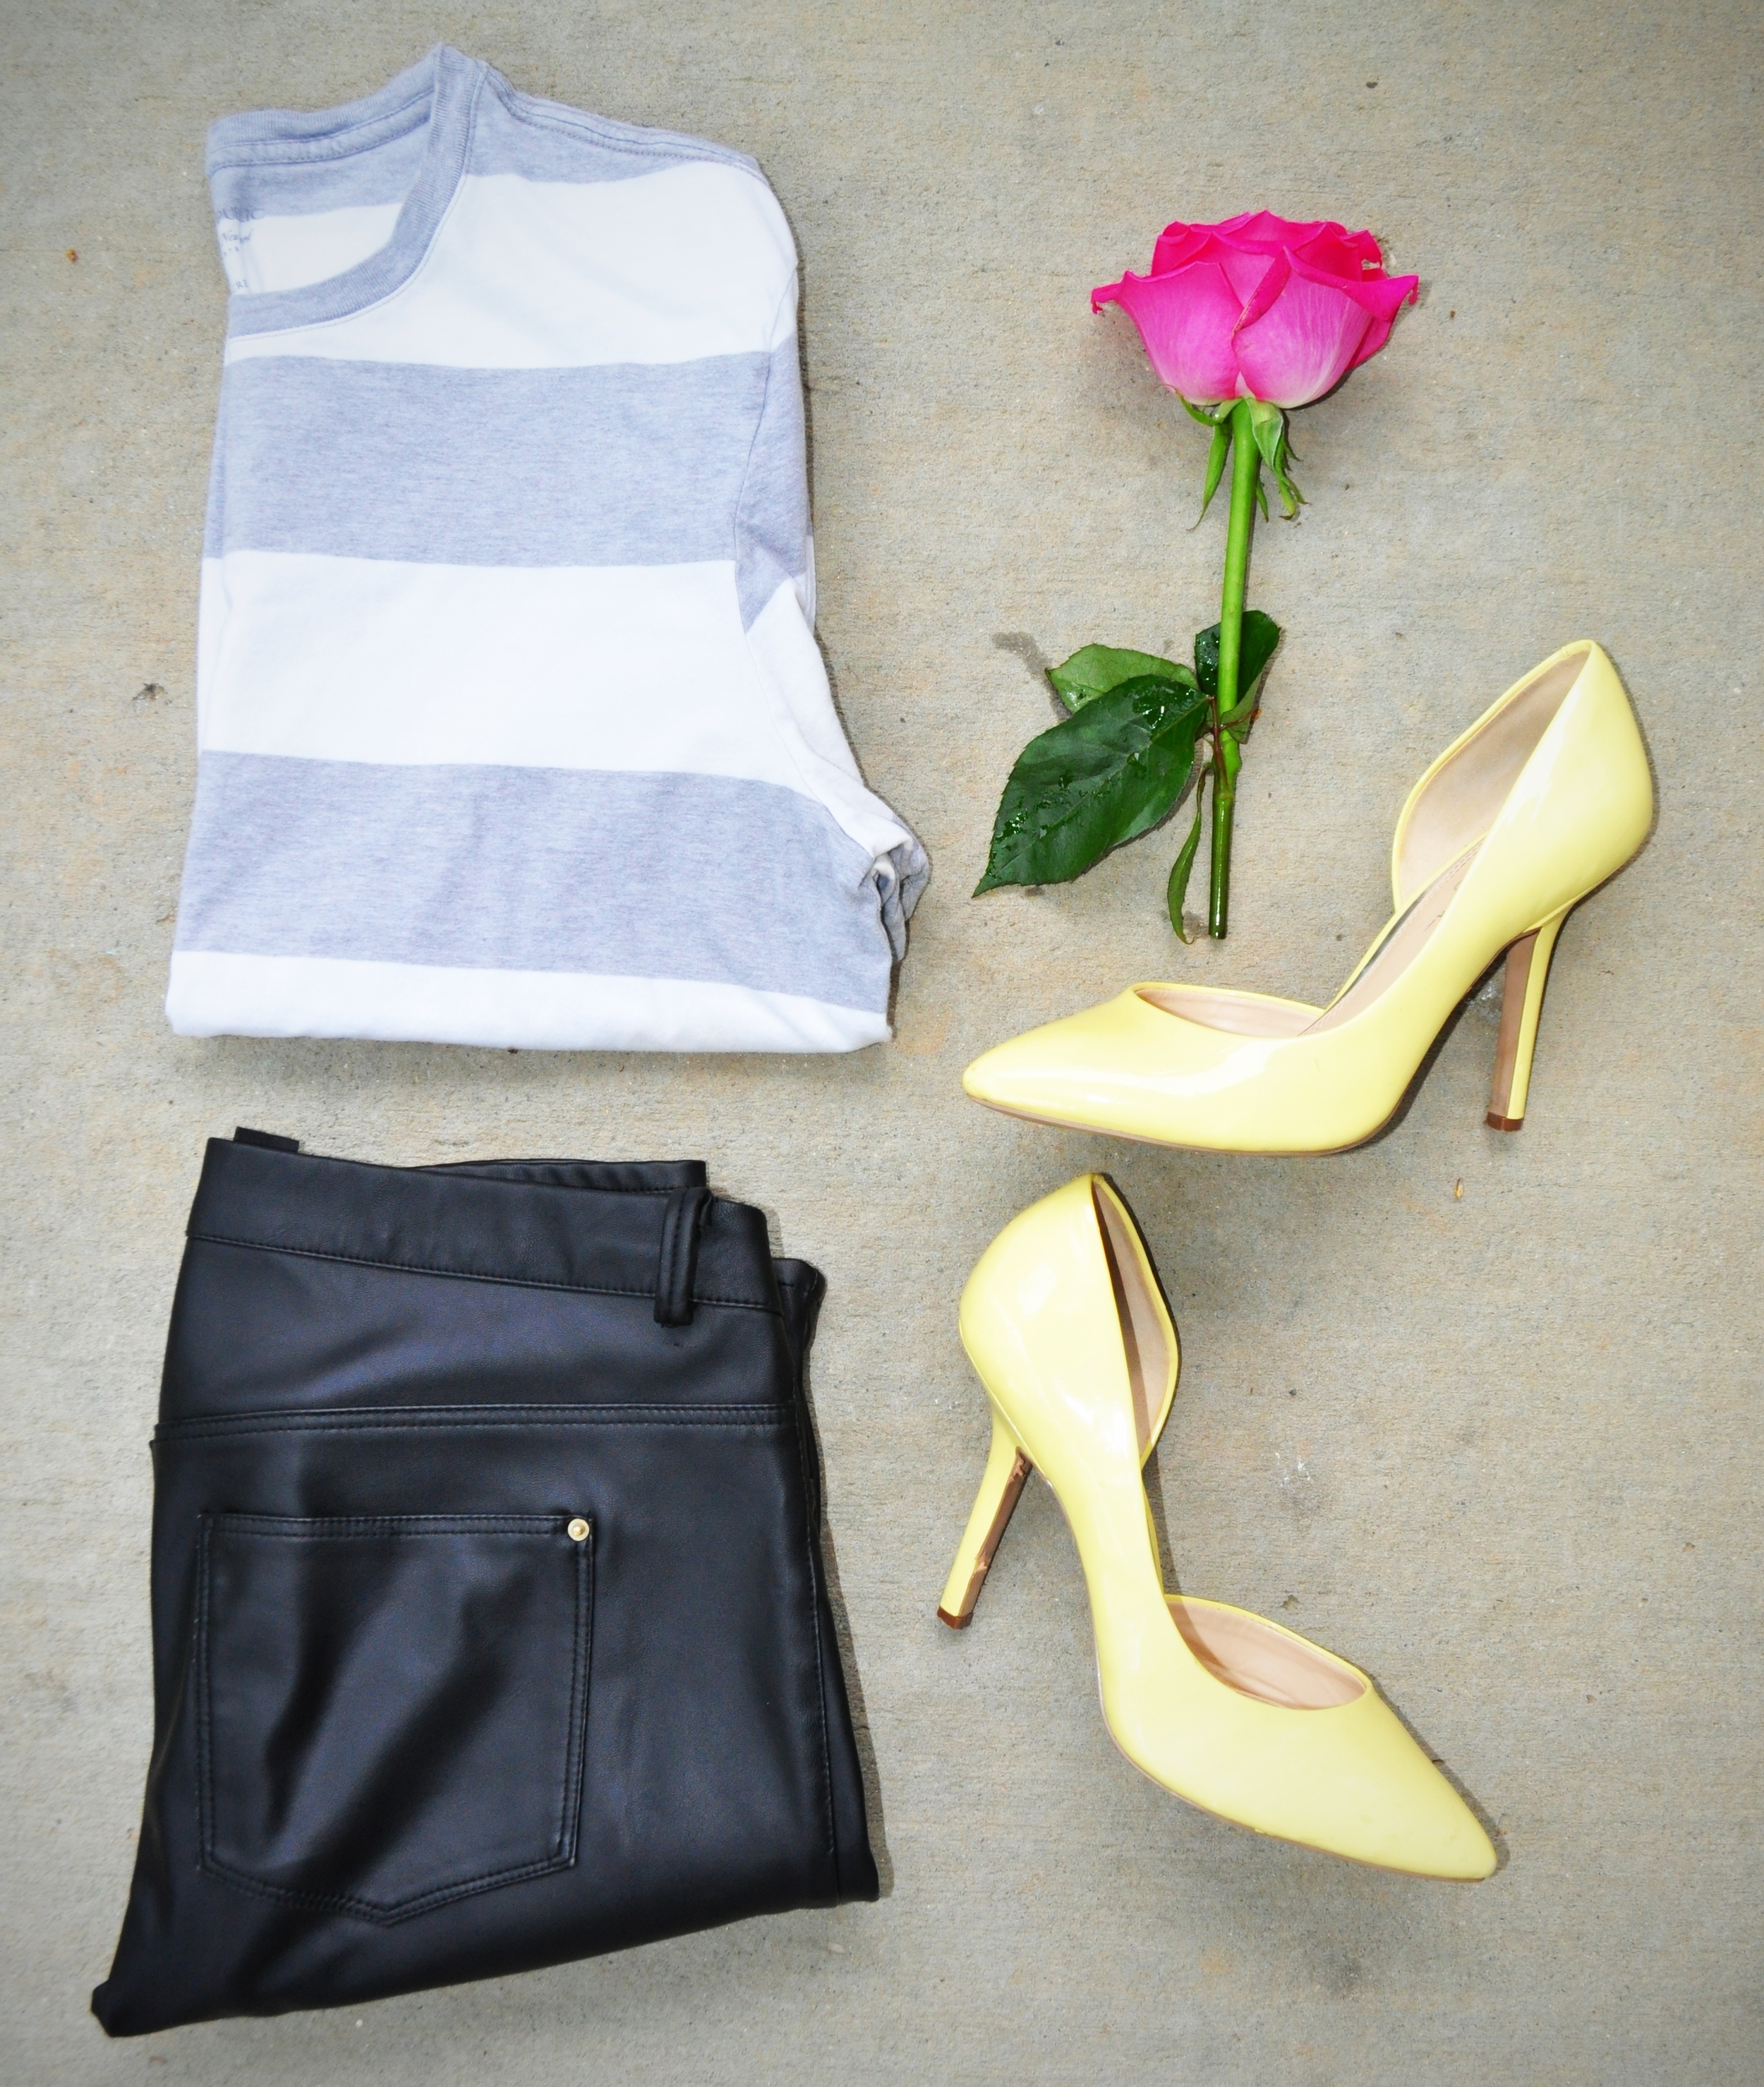 simple look from day to night, pic 2.jpg